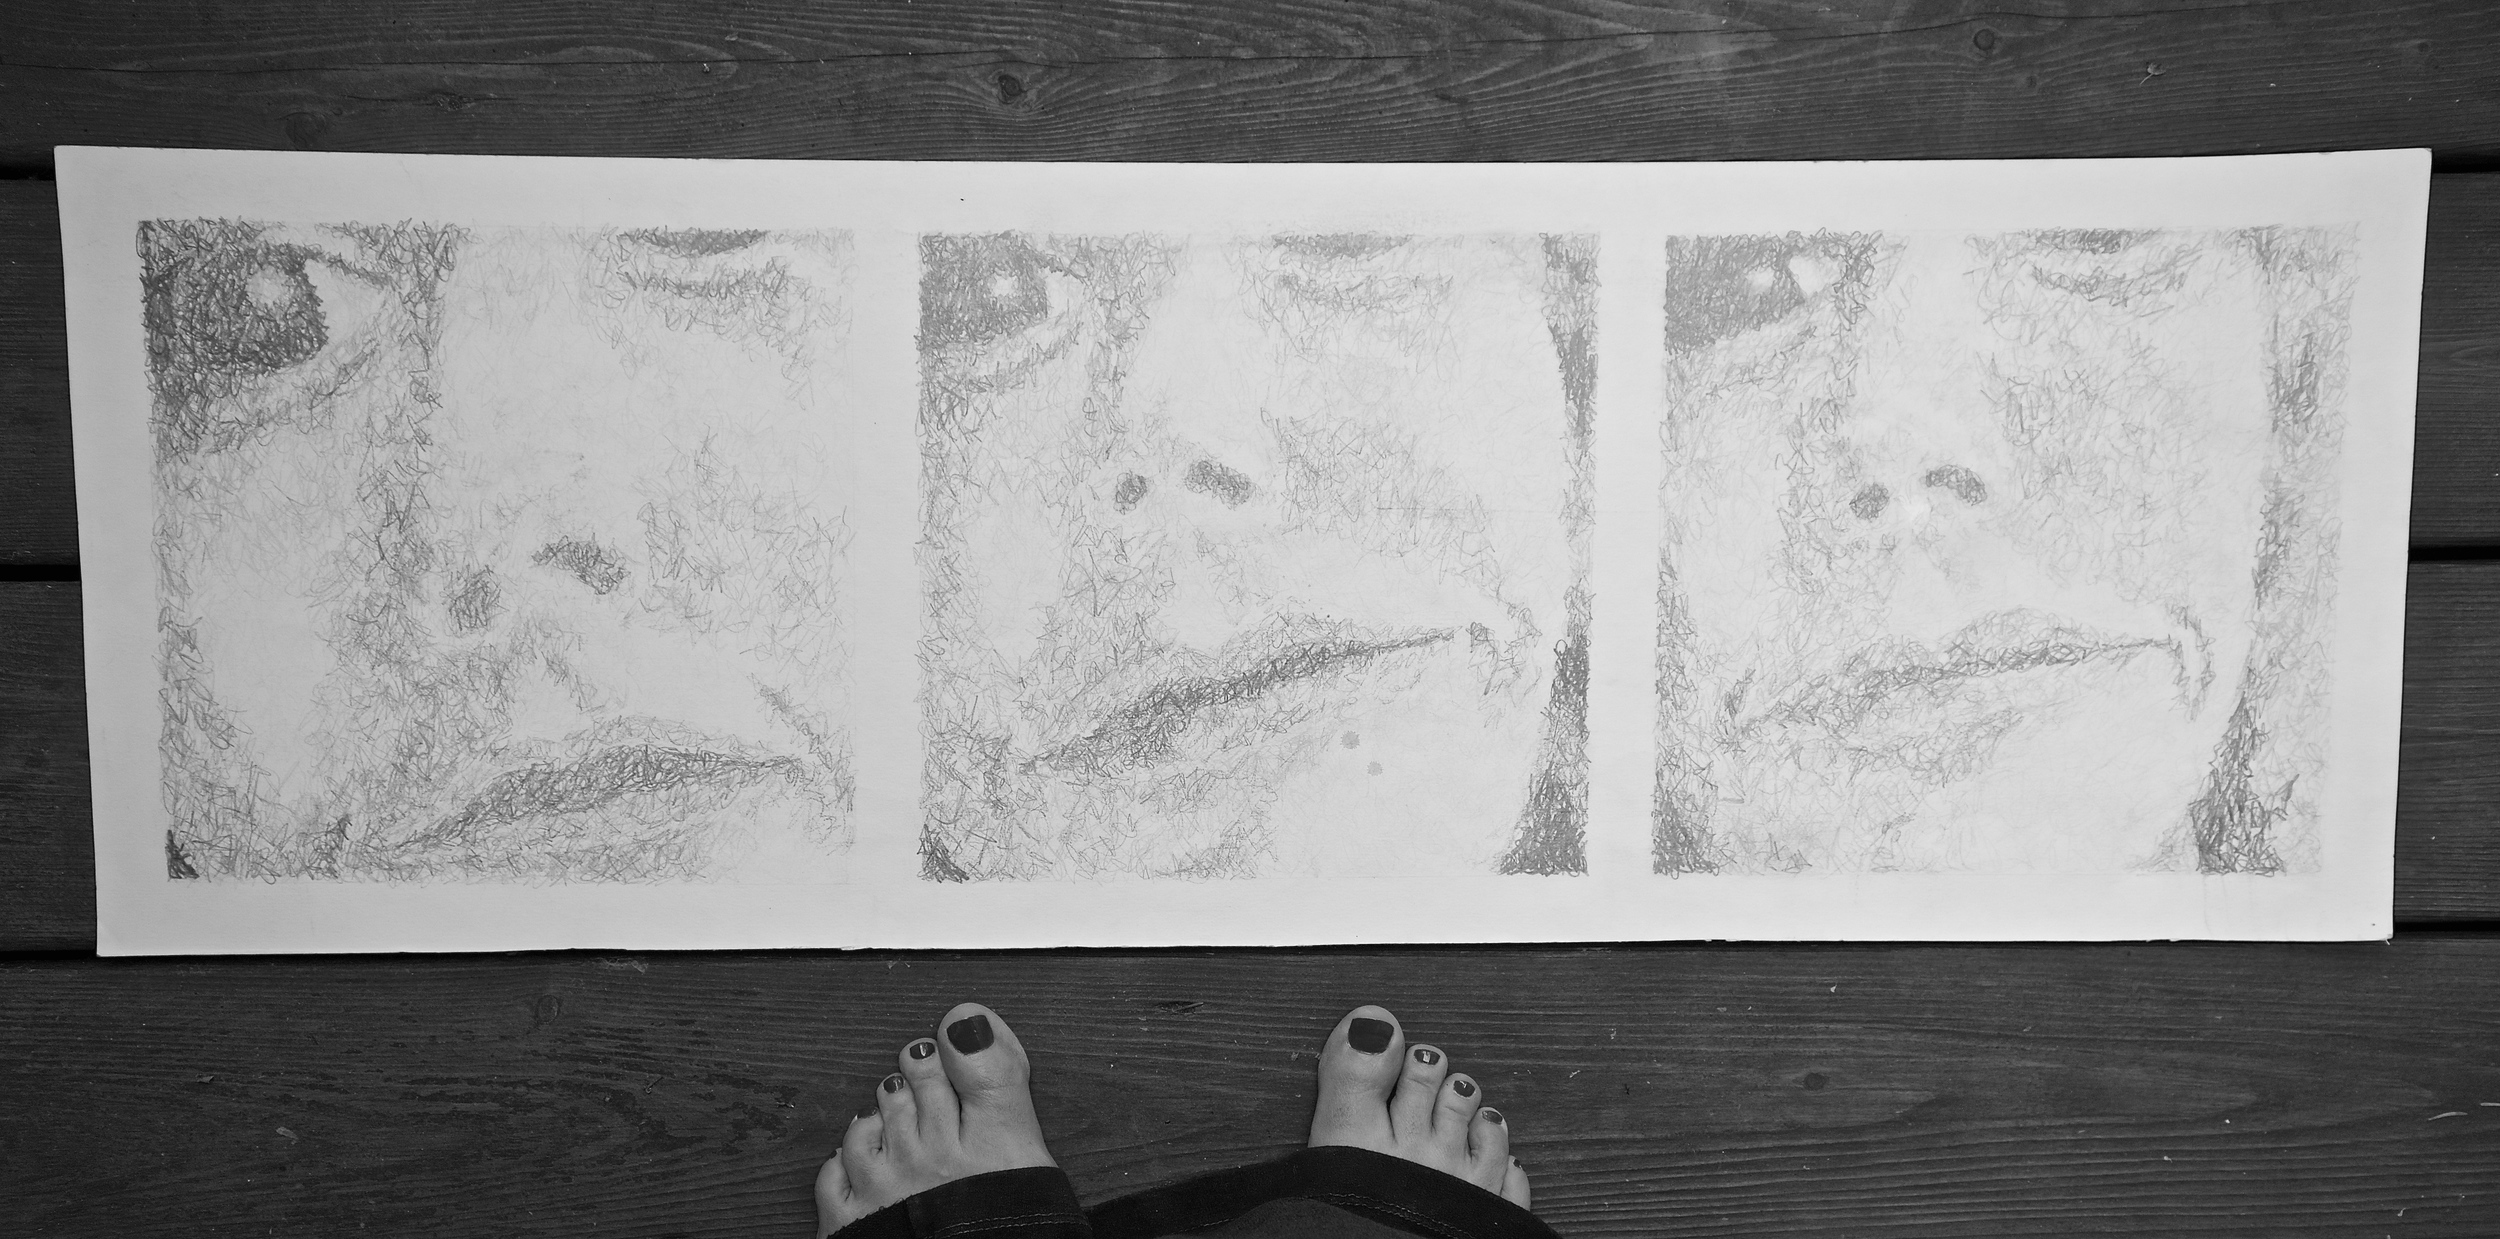 This assignment was a self portrait. This is one of a triptych.The first focuses on the eyes. The second on my eyes and nose, and lastly my entire face. I remember that I did quite well on this even though I did the entire assignment the day before it was due. To be twenty again!